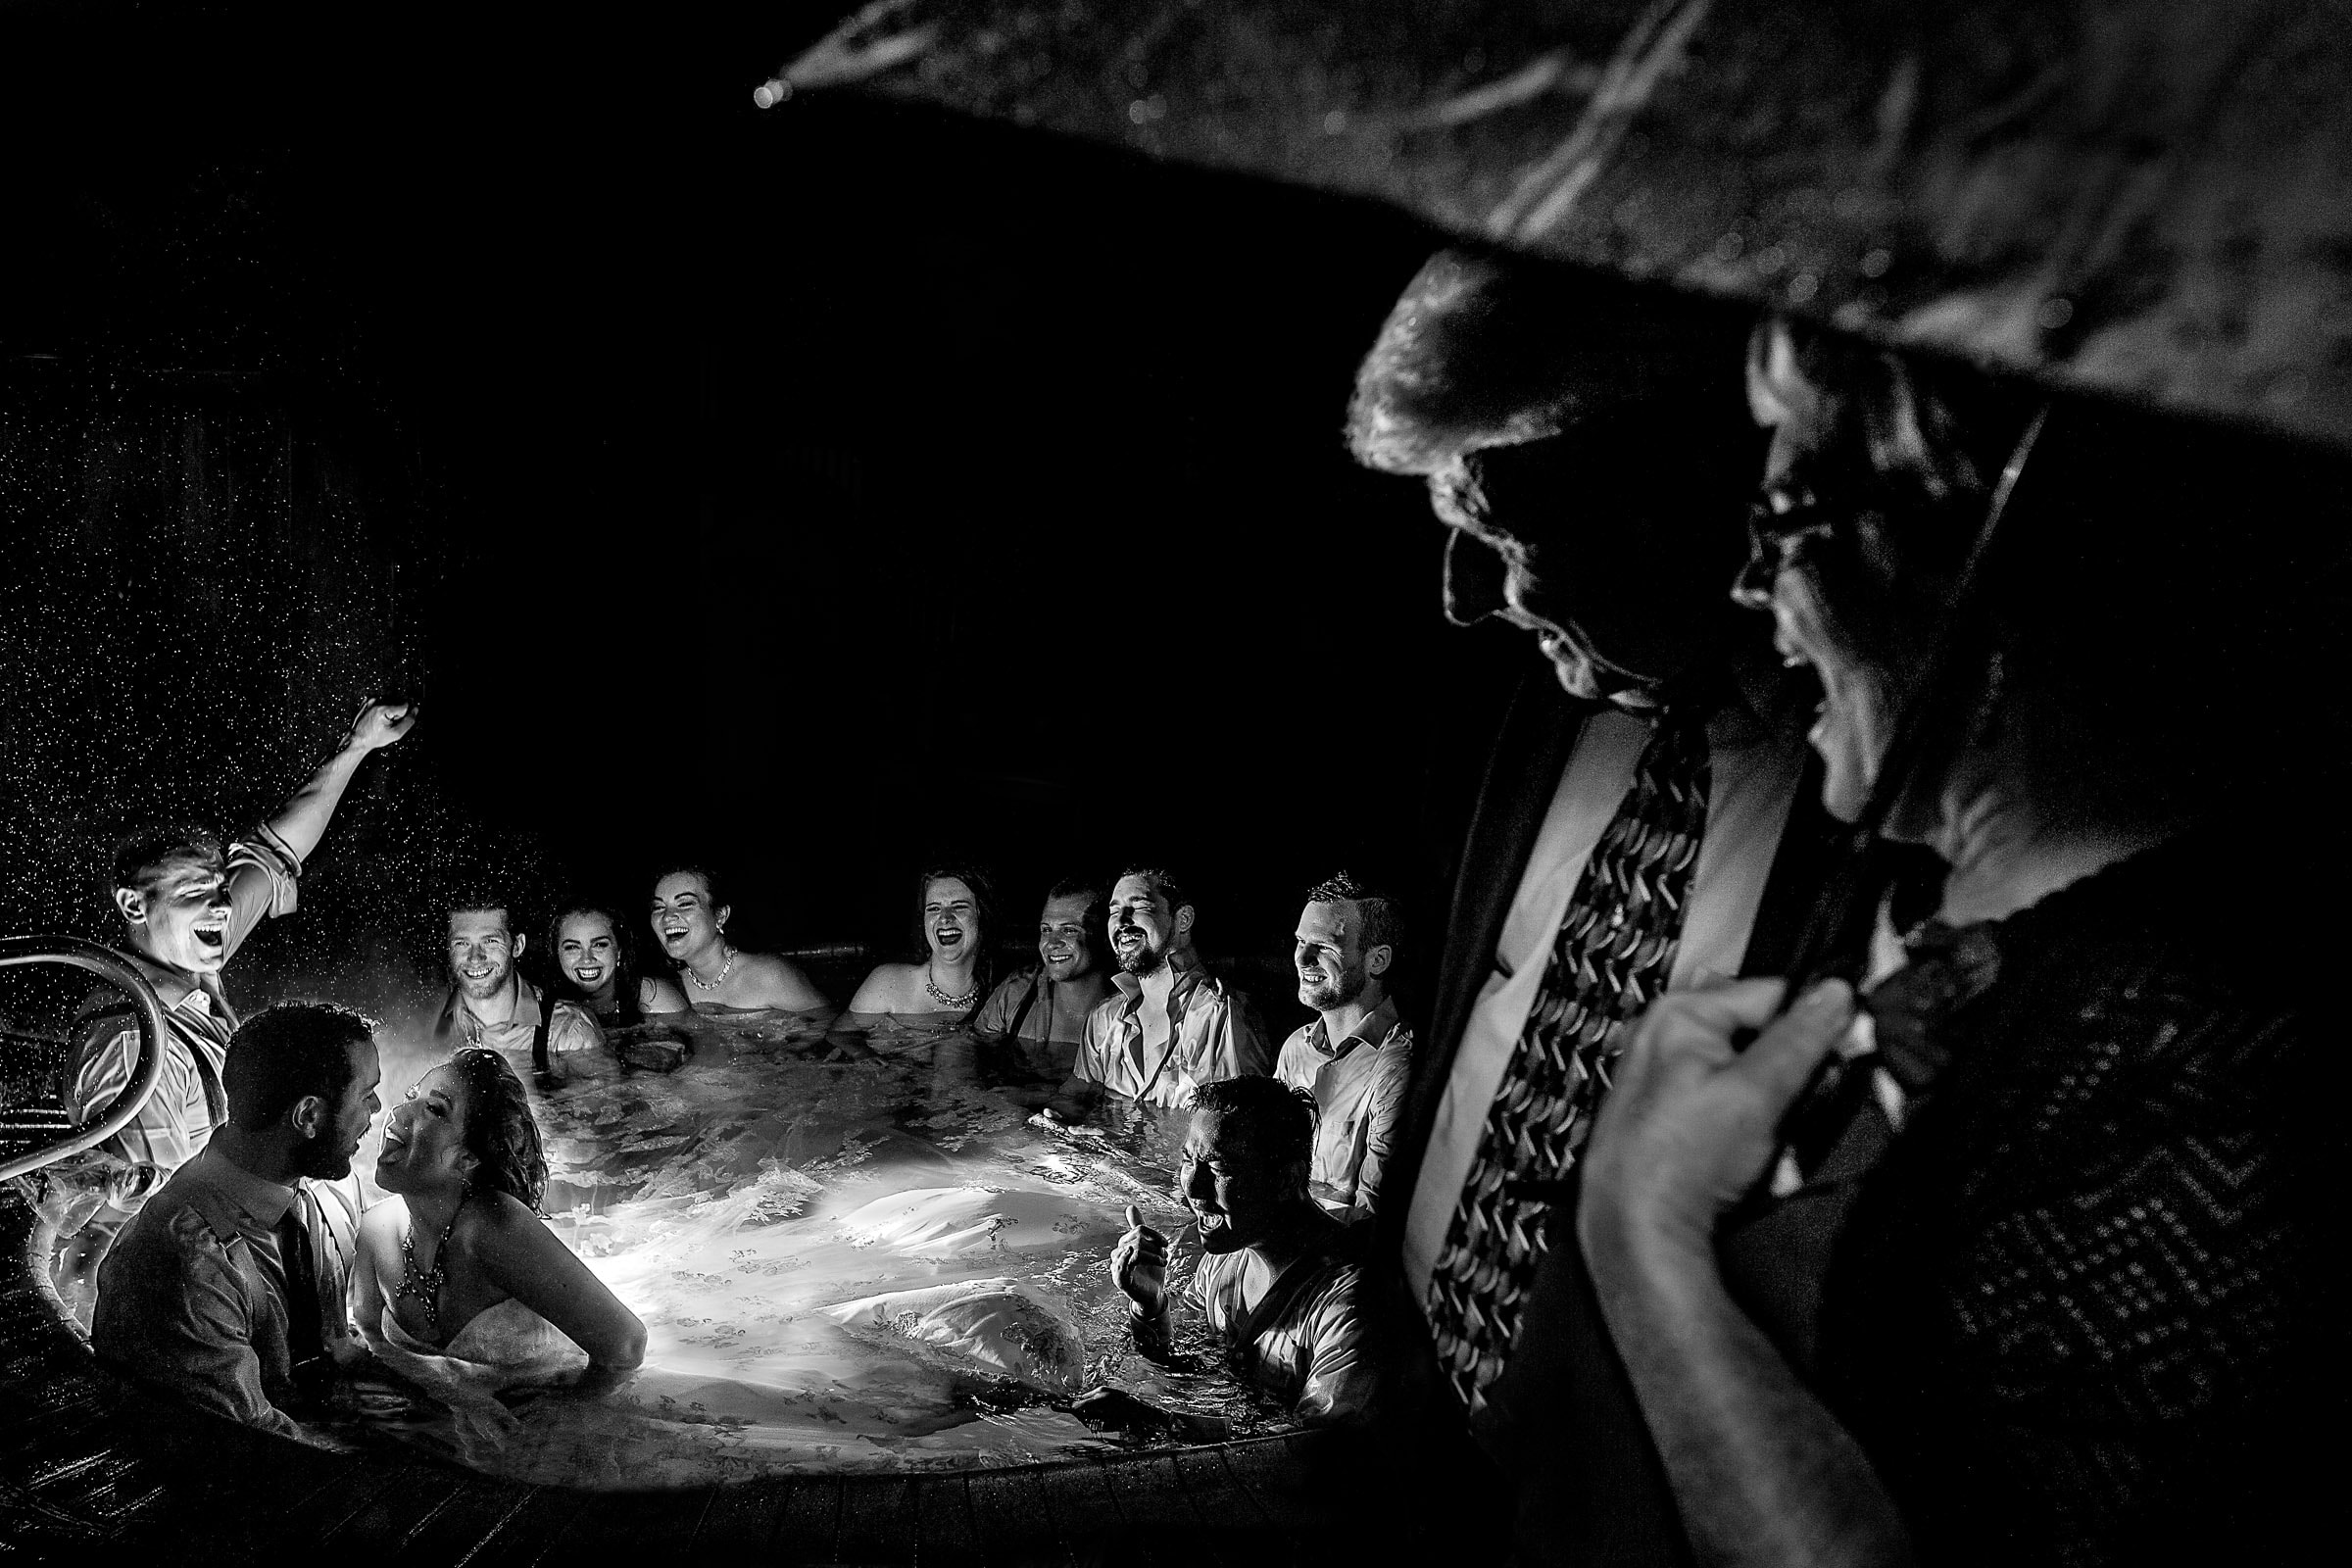 And award winning wedding photo by The Worlds Best Wedding Photos contest of bride and groom in a hot tub with family and friends at a Resort at the Mountain Wedding in Oregon near Mt Hood